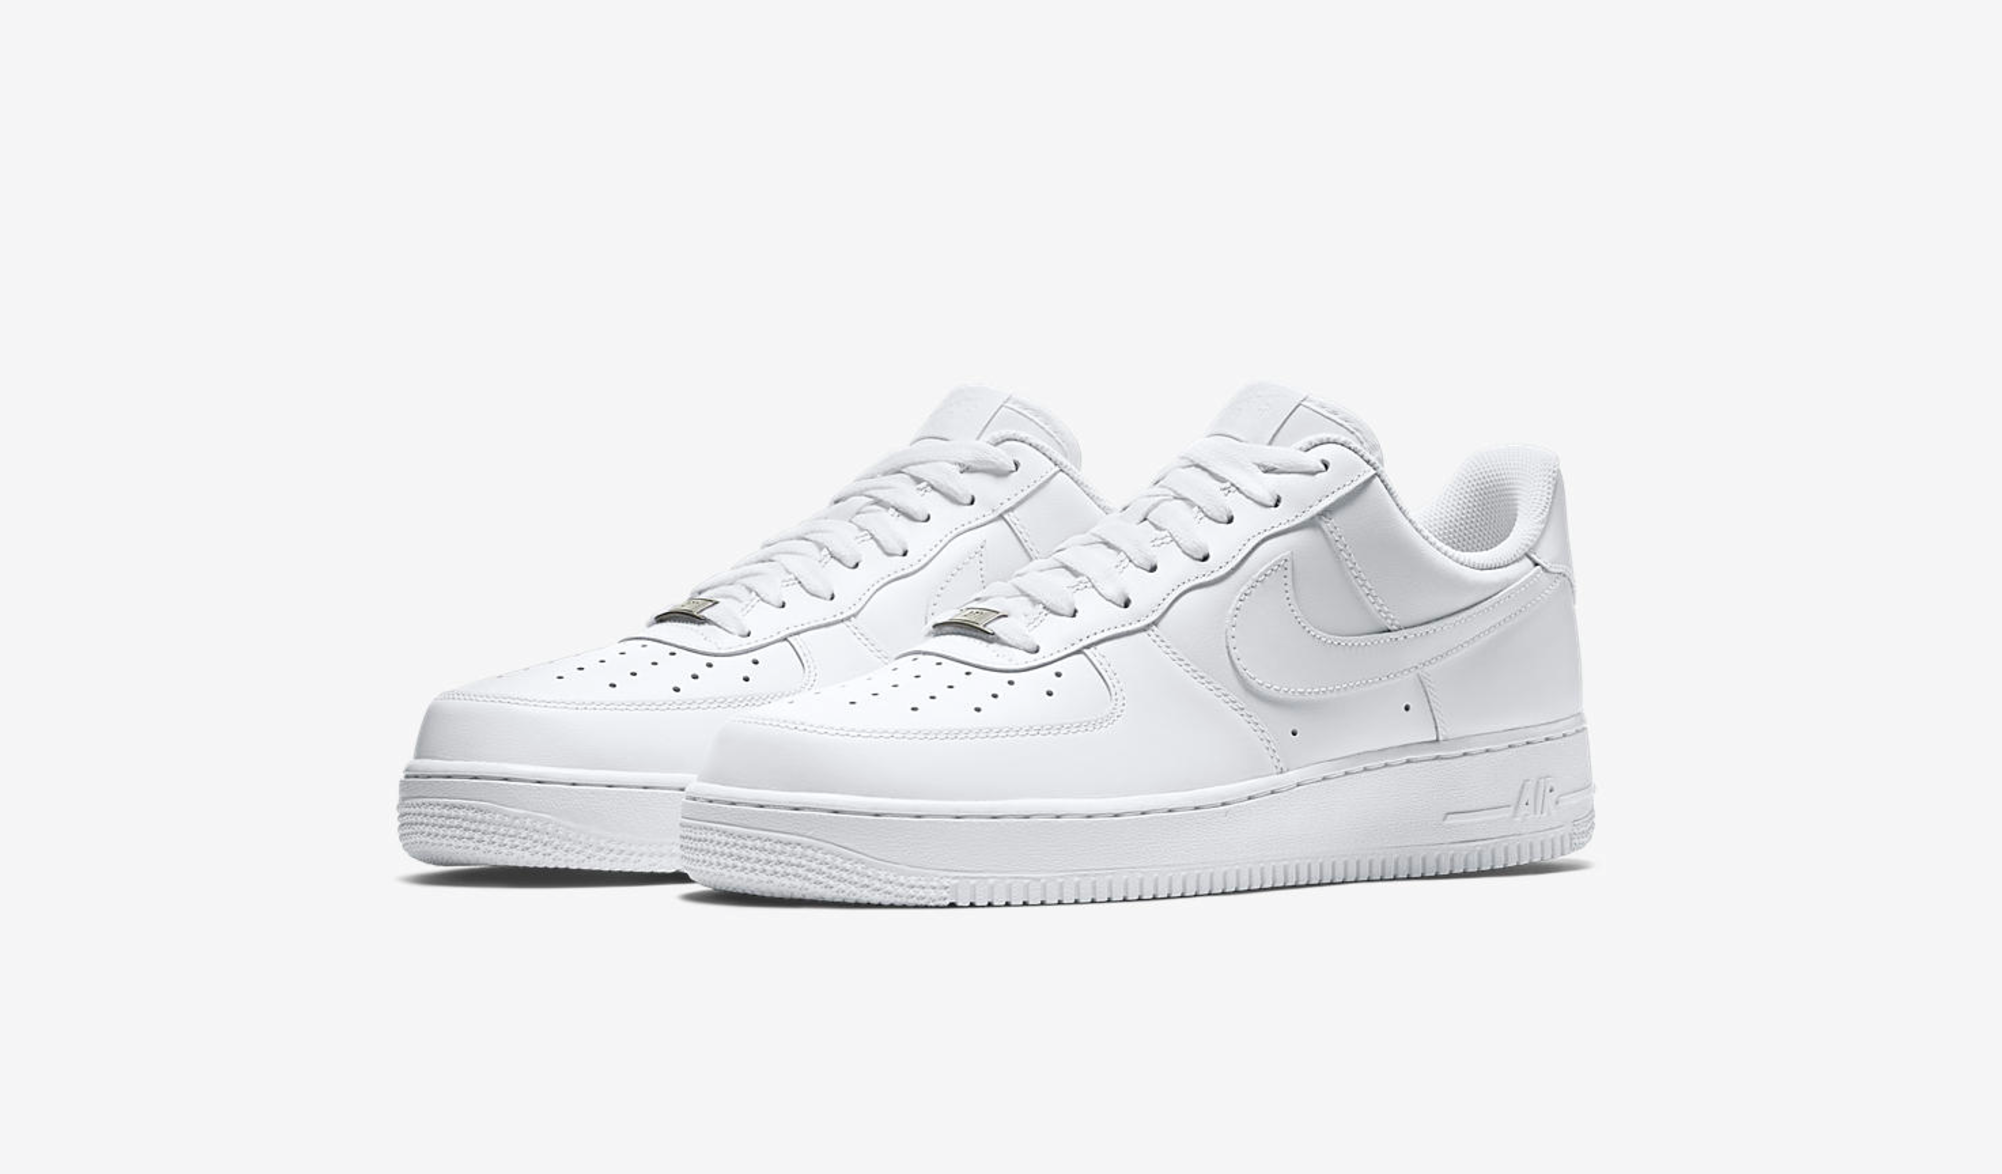 Nike Revives Classics with the Triple White Air Force 1 Pack